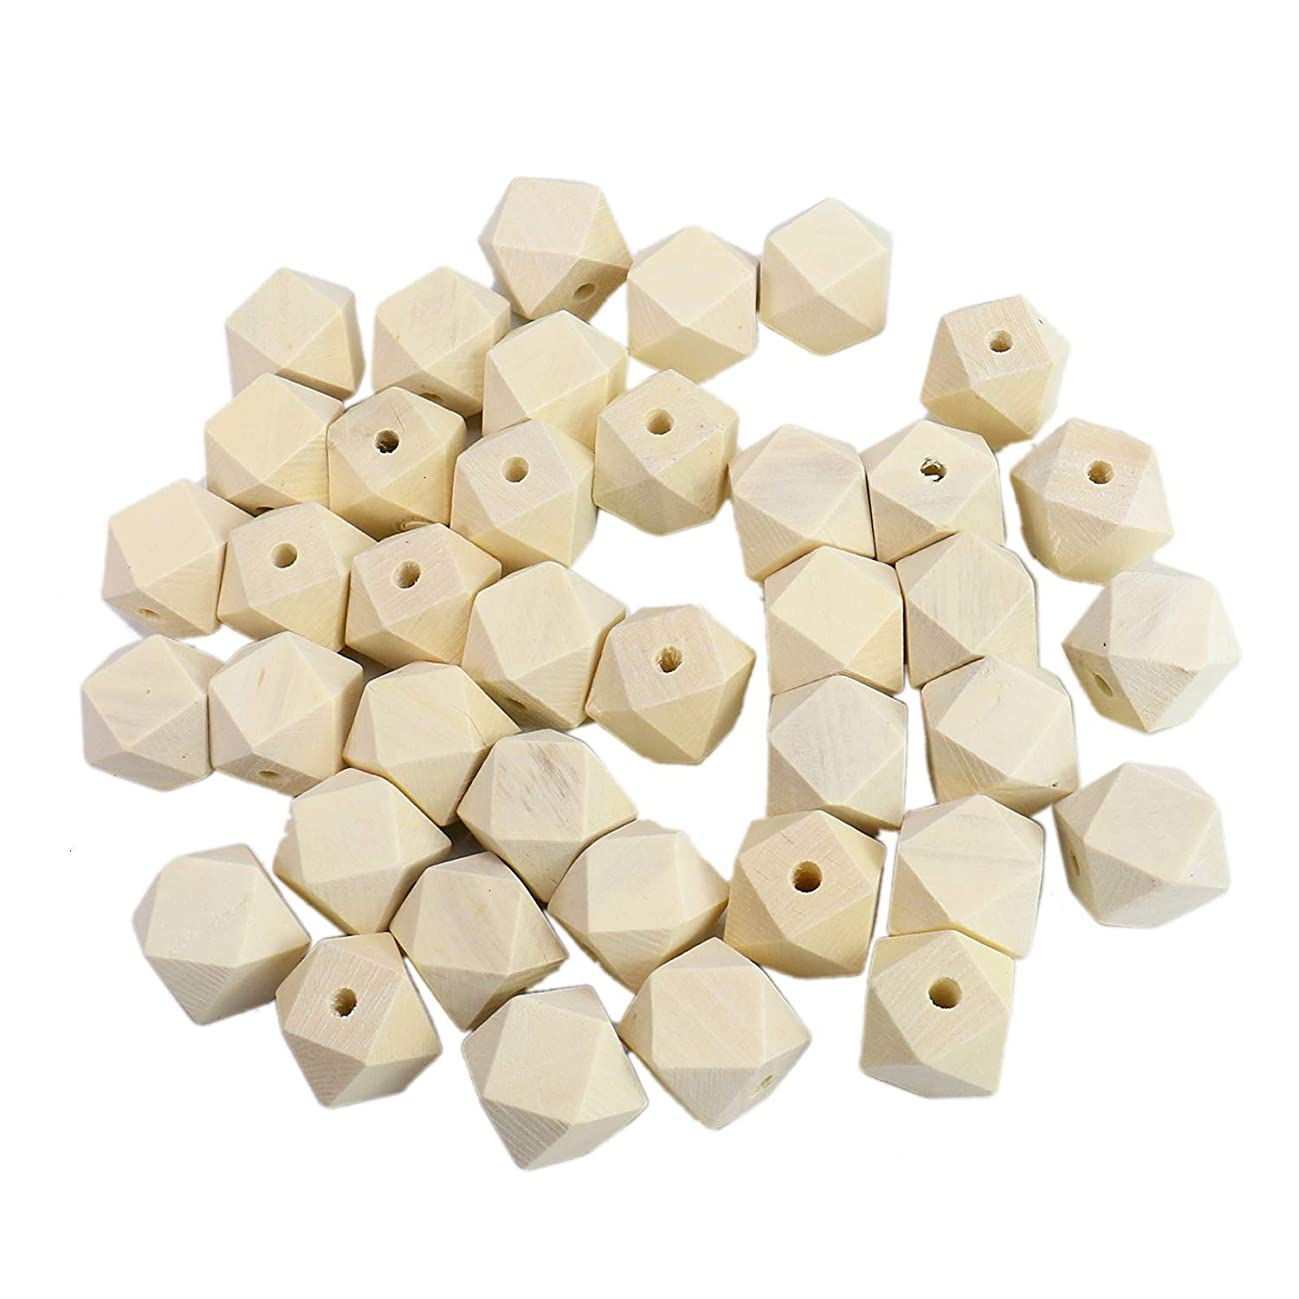 Monrocco 50Pcs 20mm Geometric Wood Beads Natural Polygon Wood Beads Faceted Unpainted Wooden Spacer Beads with 3.5mm Hole